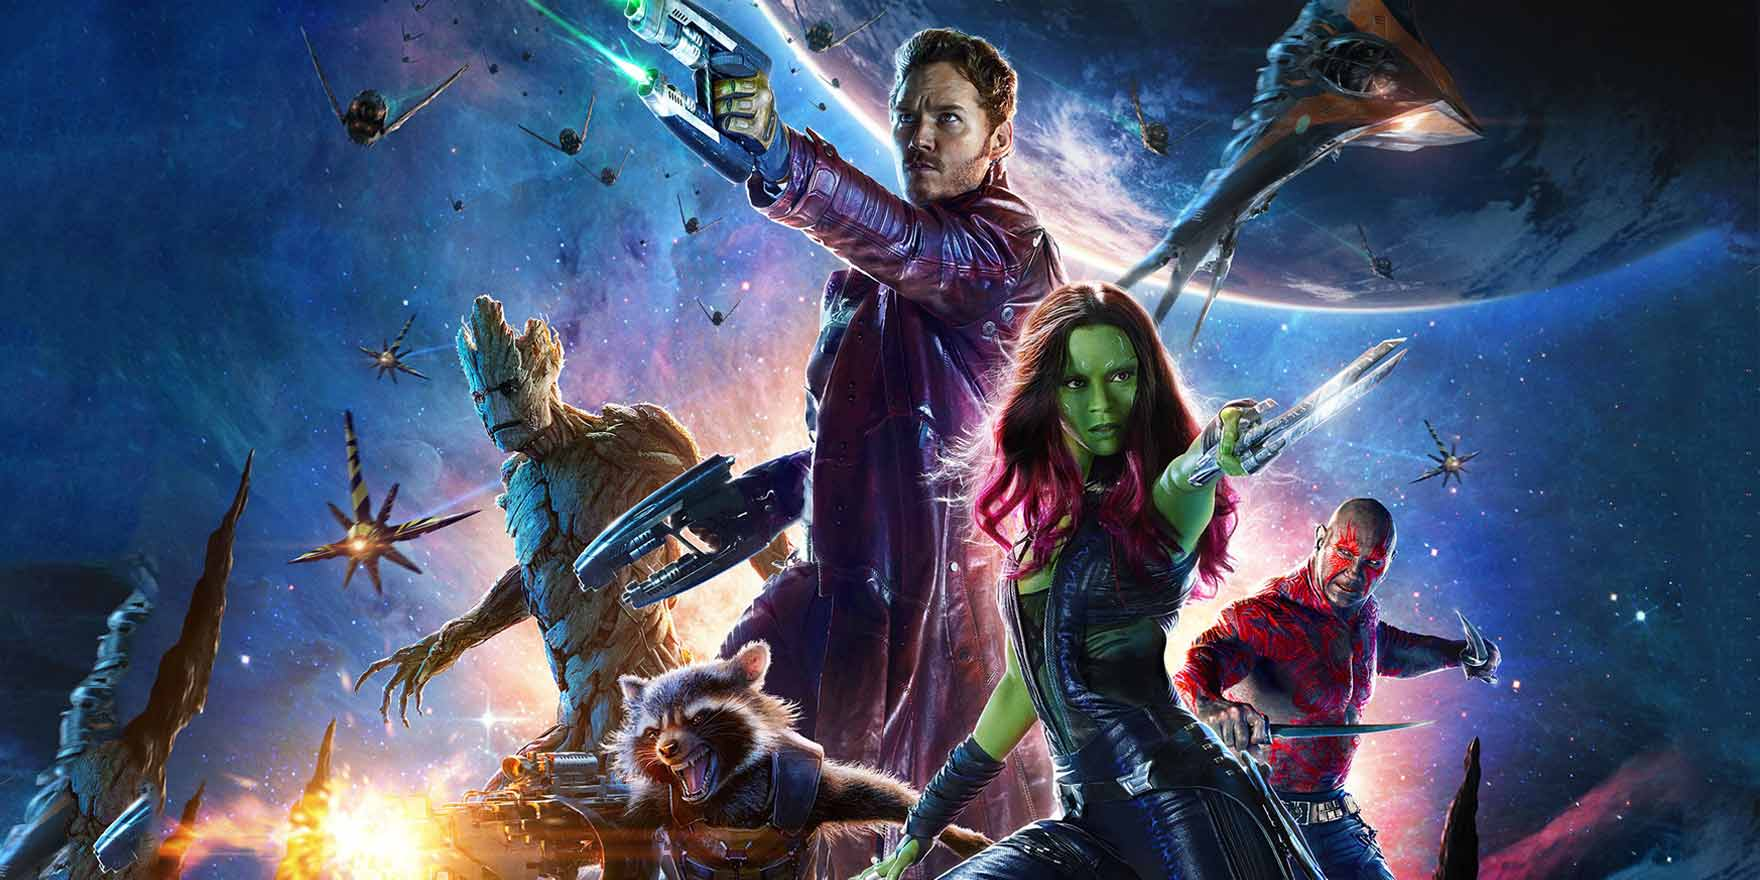 Guardians of the Galaxy - Header Image